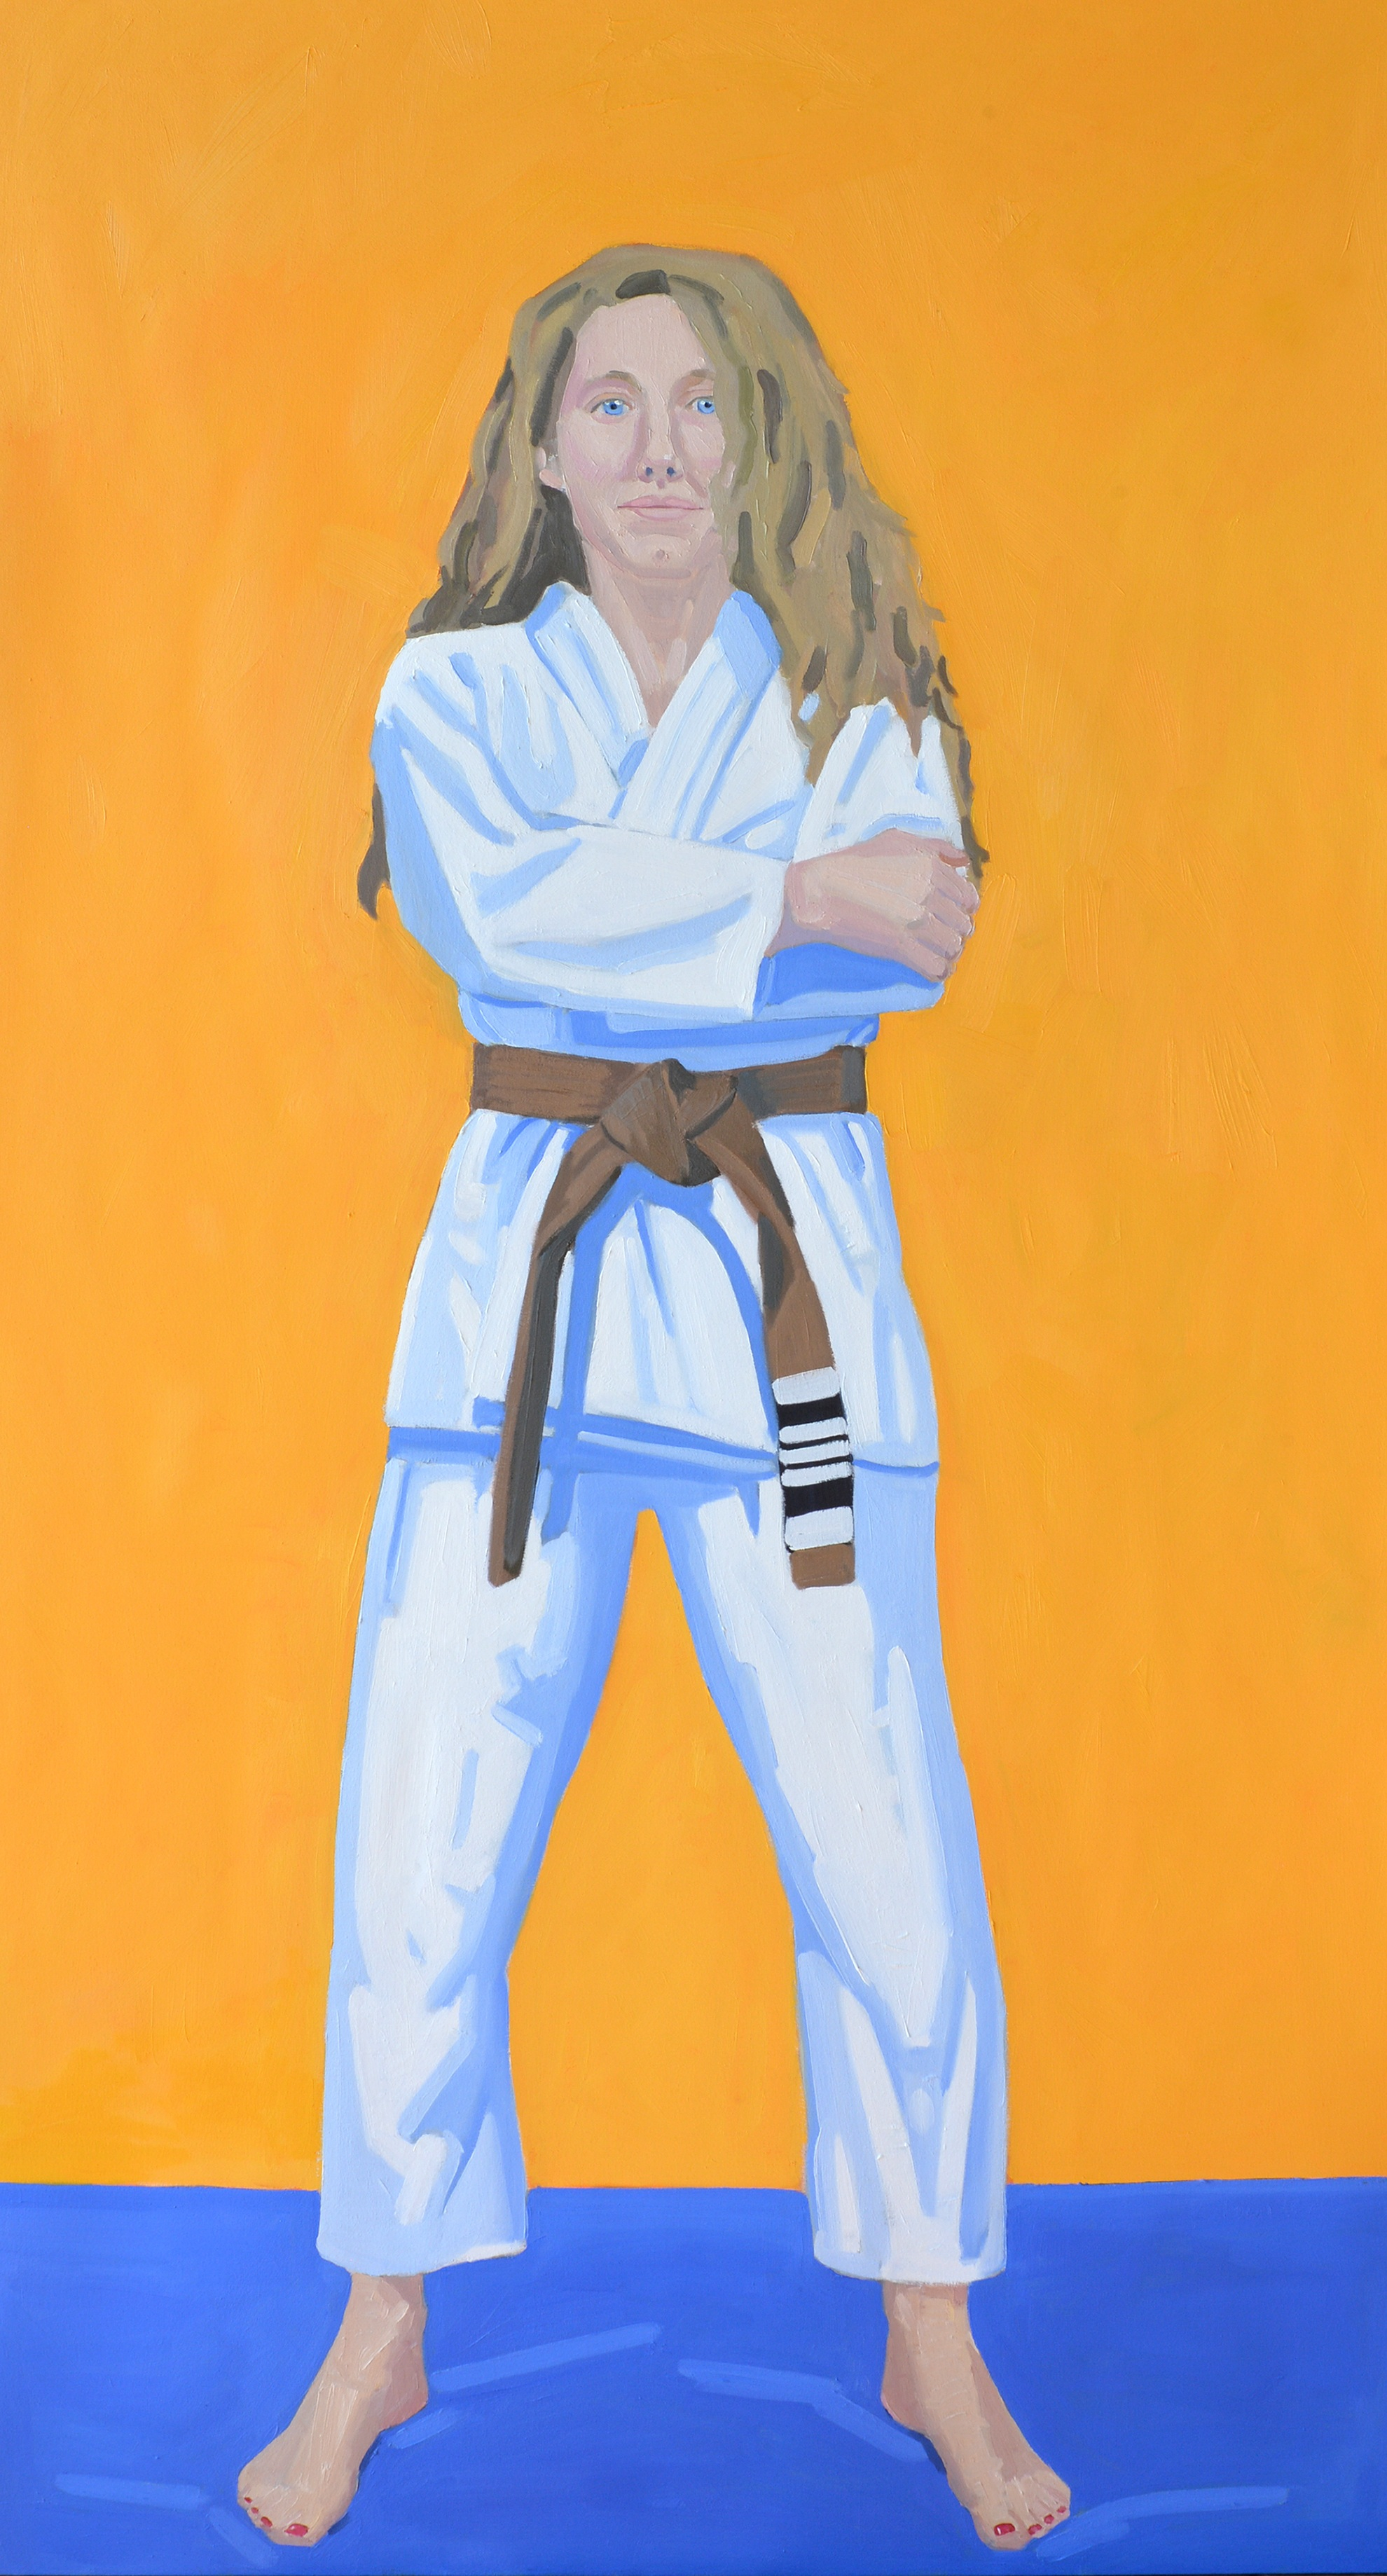 Tori-72x40inches-oilOnCanvas-2018.jpg